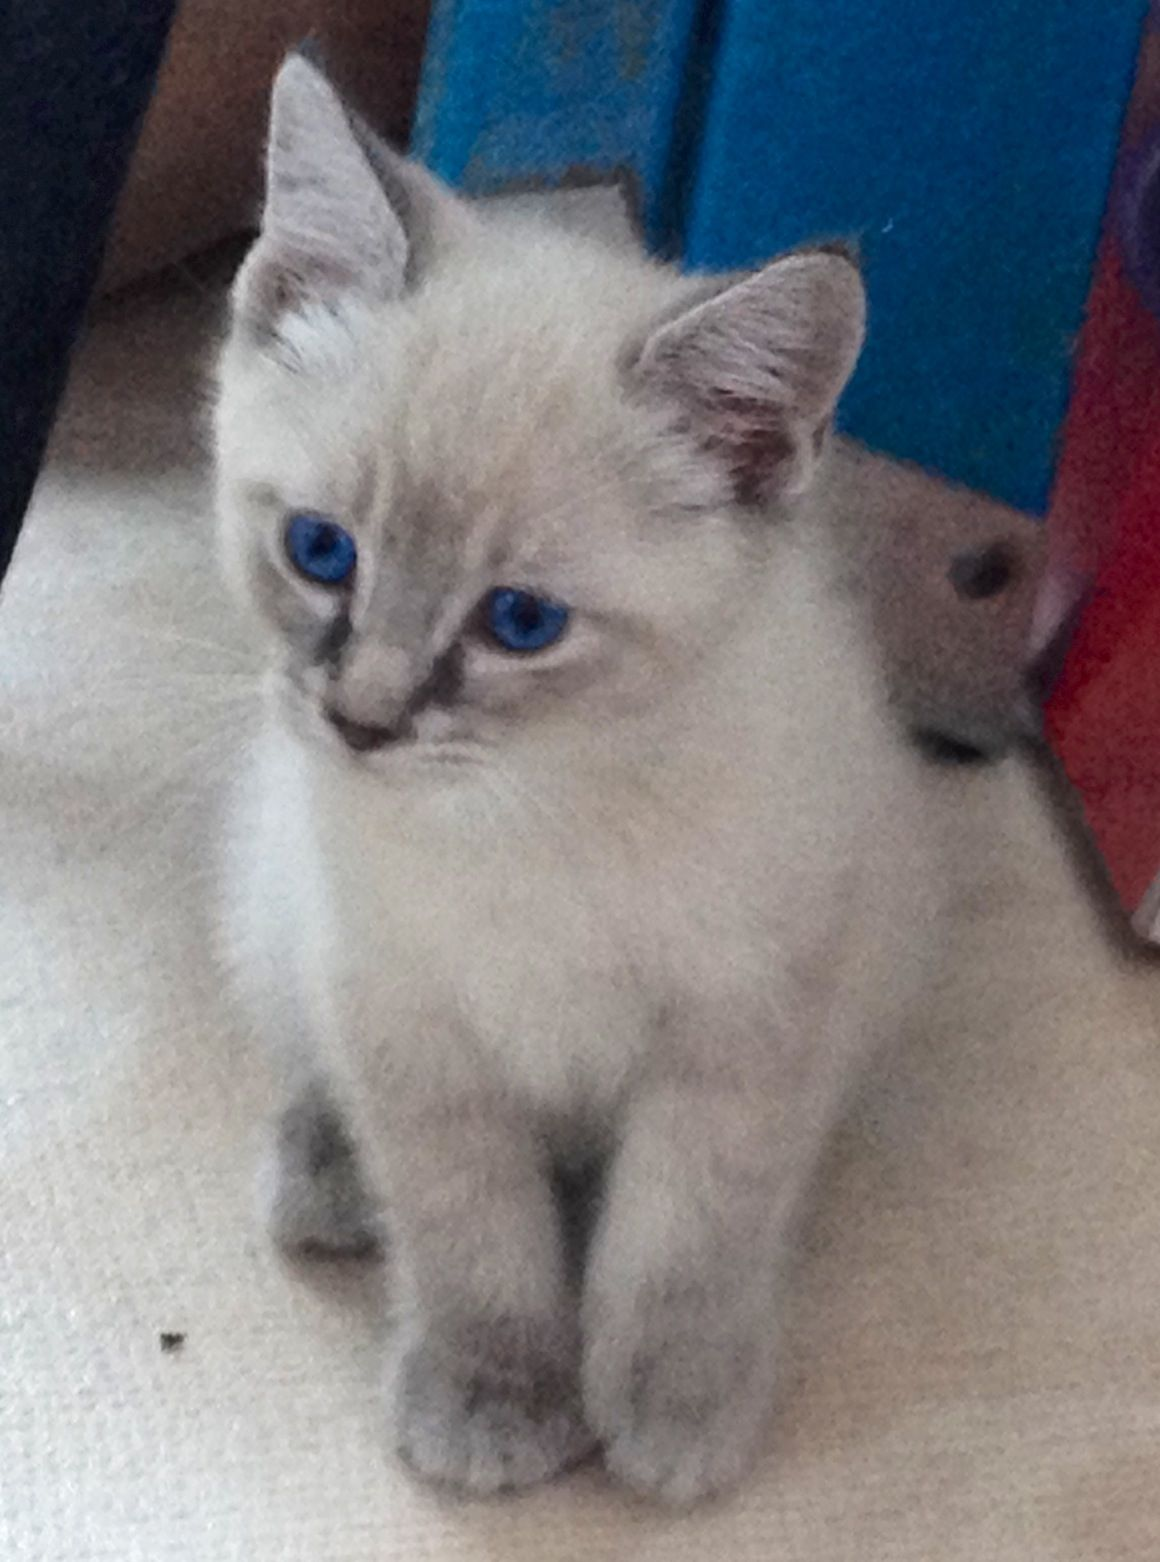 Manx and Siamese mix kitten No tail just a little gray nubbin